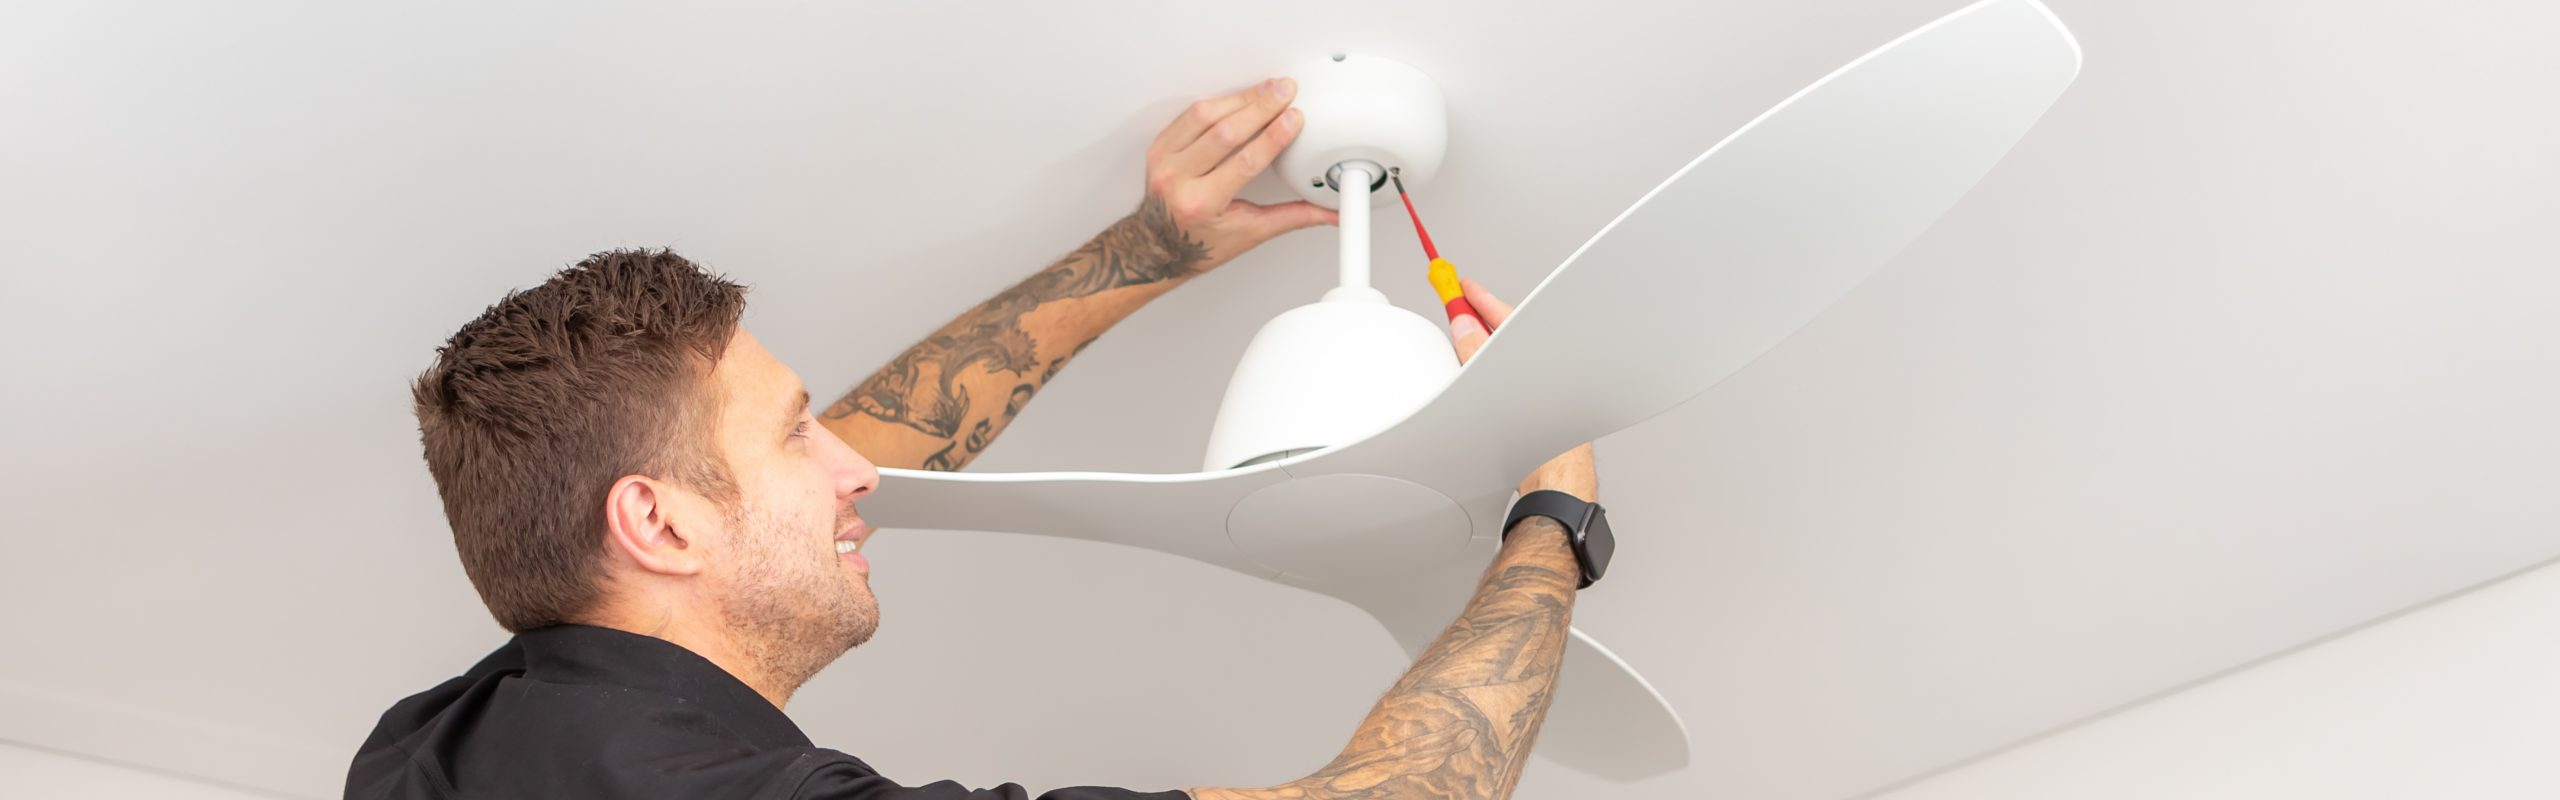 Ceiling Fan Electrician - Electrician Caringbah - Electrician Sutherland Shire